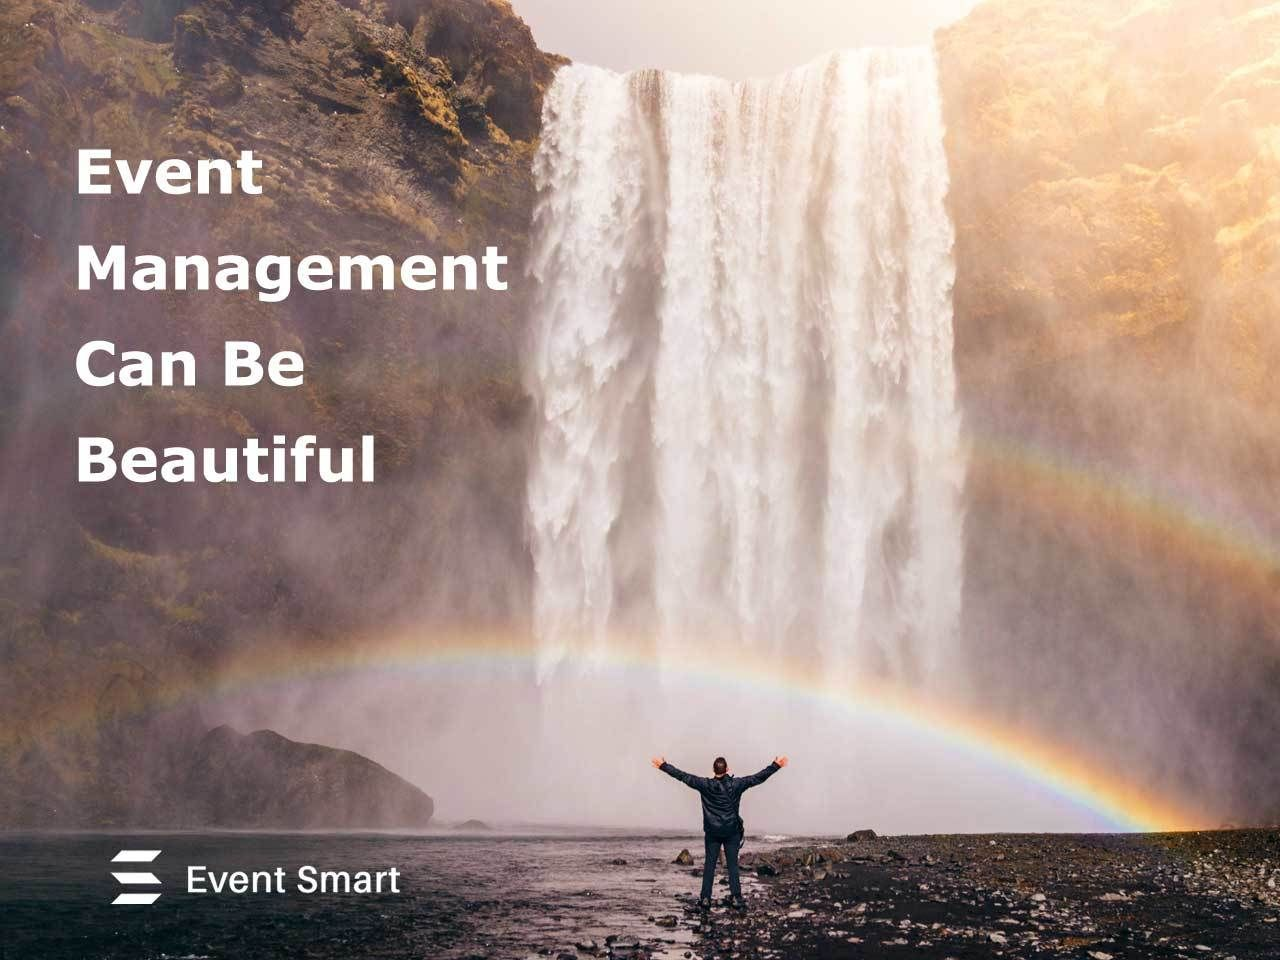 Event Management Can Be Beautiful with the Advanced Event Editor  #eventtech #eventprof